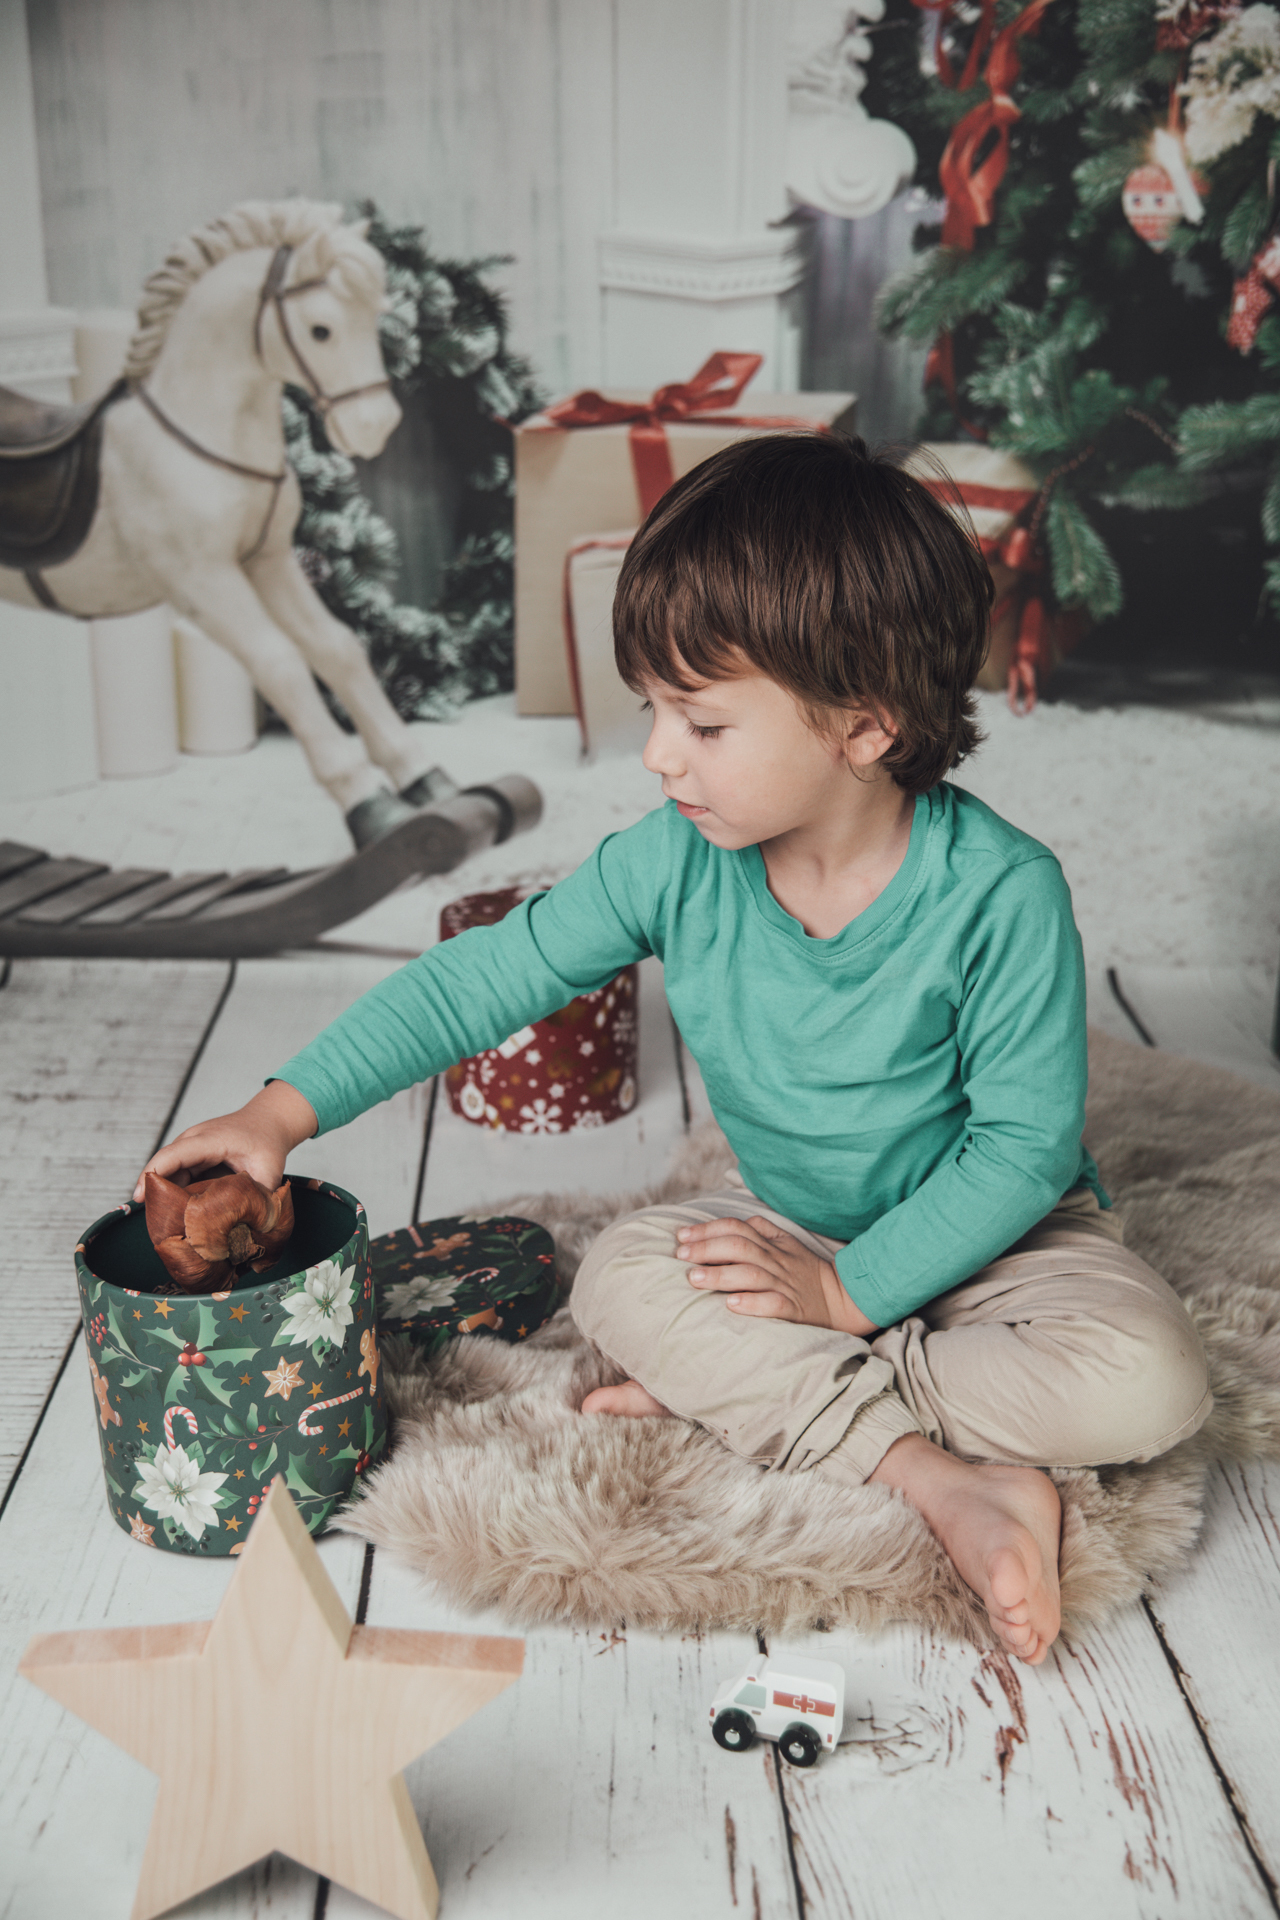 Weihnachtsminis_Vincent21_new_web-44